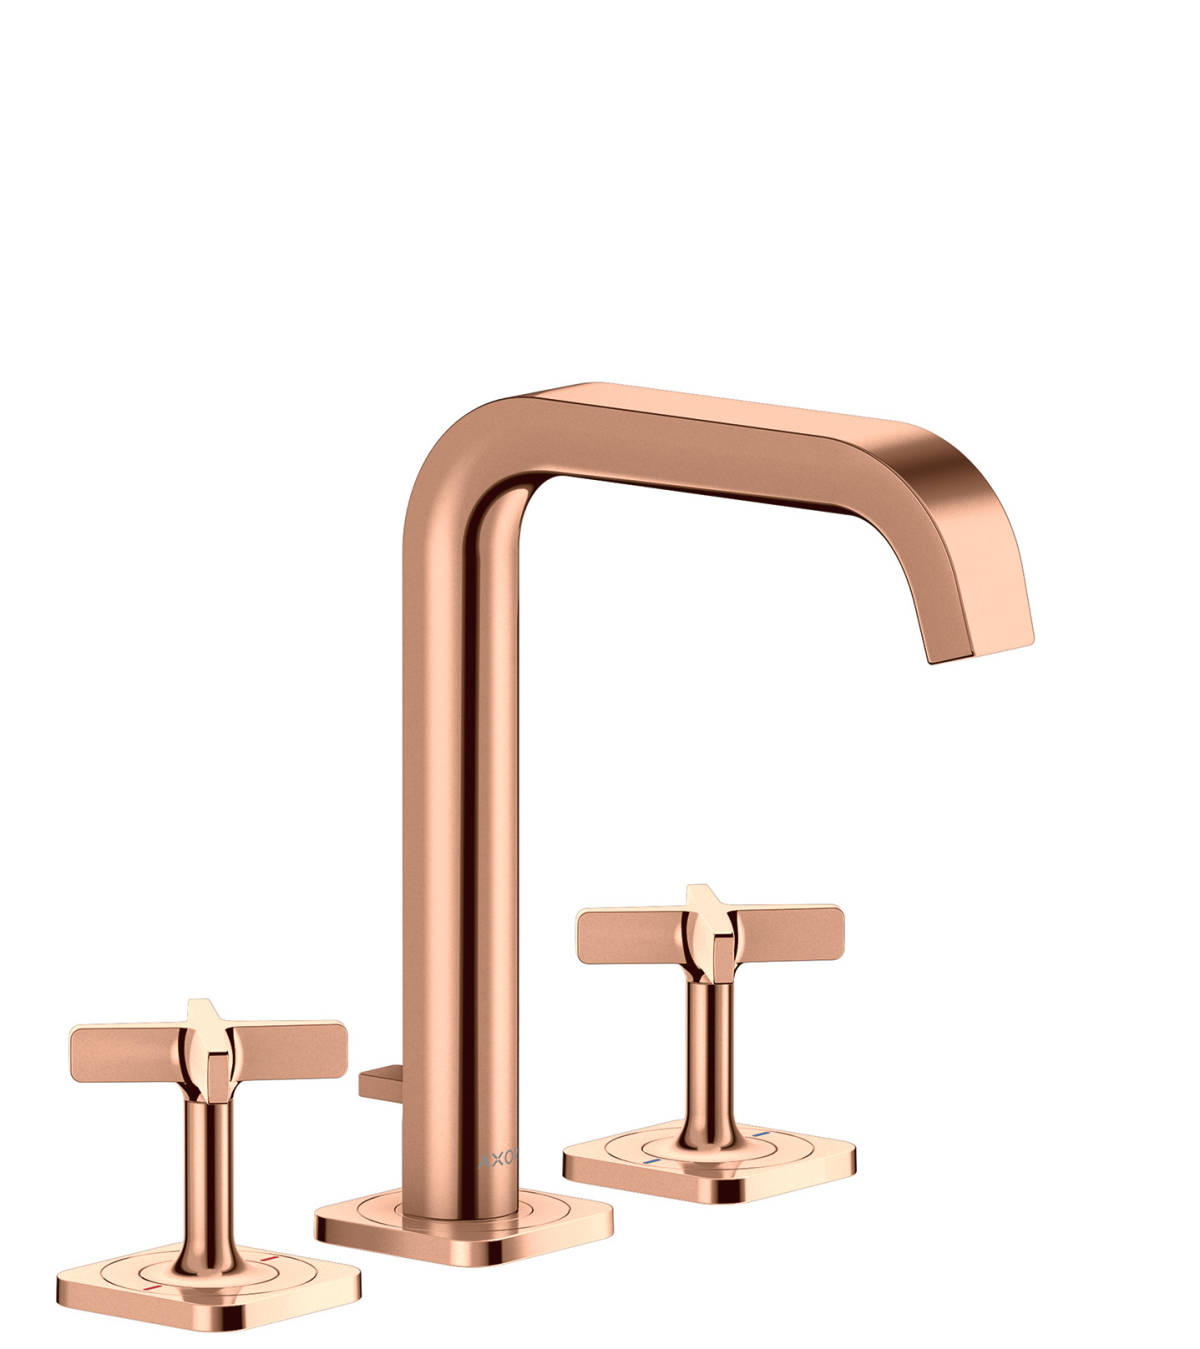 3-hole basin mixer 170 with escutcheons and pop-up waste set, Polished Red Gold, 36108300